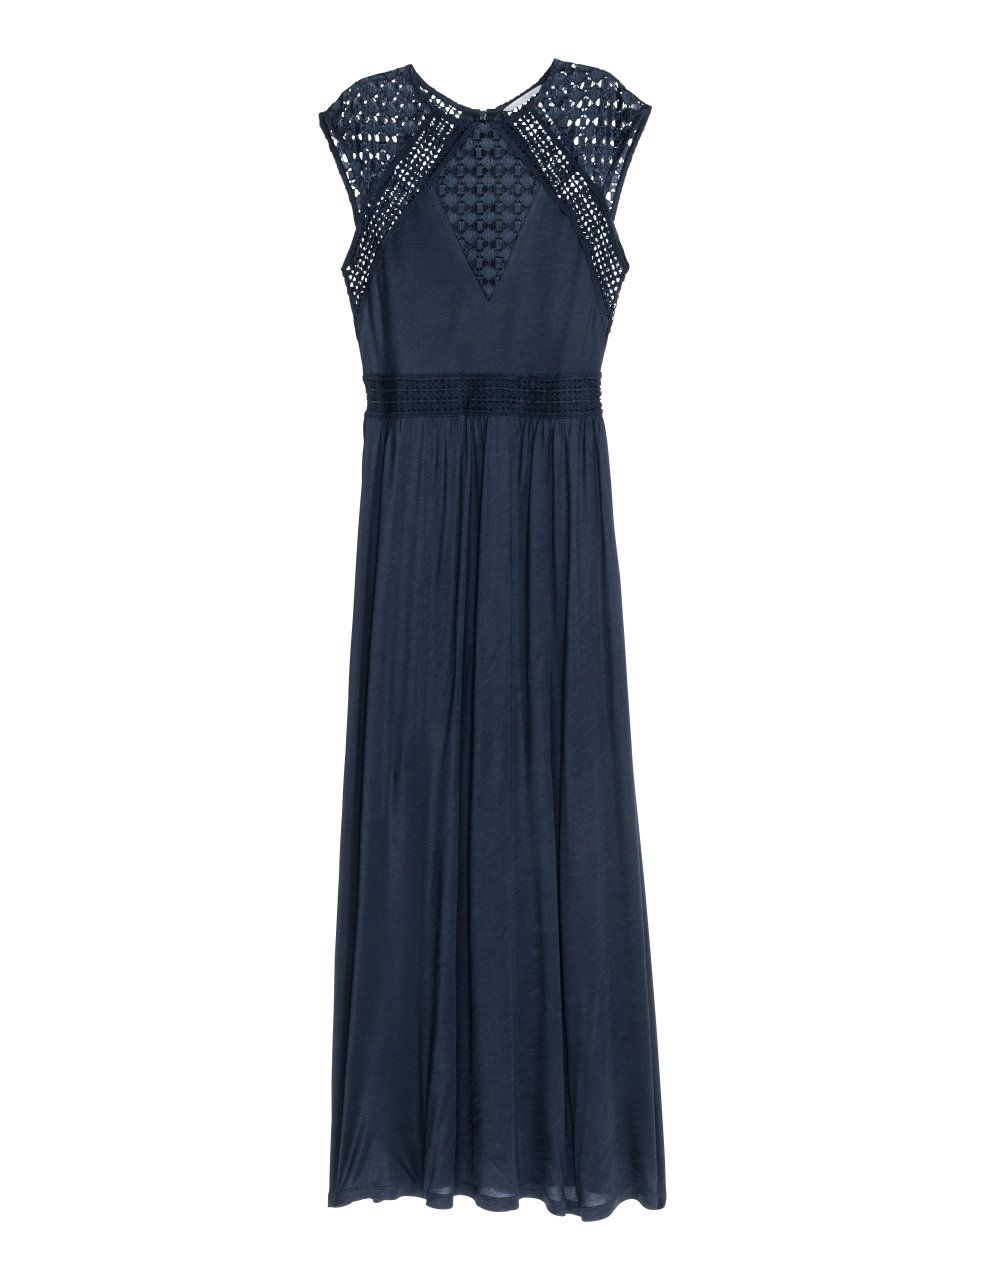 H&m blue lace dress  Maxi Dress with Lace  Dark blue  Ladies  HuM US  Cruise Vacation